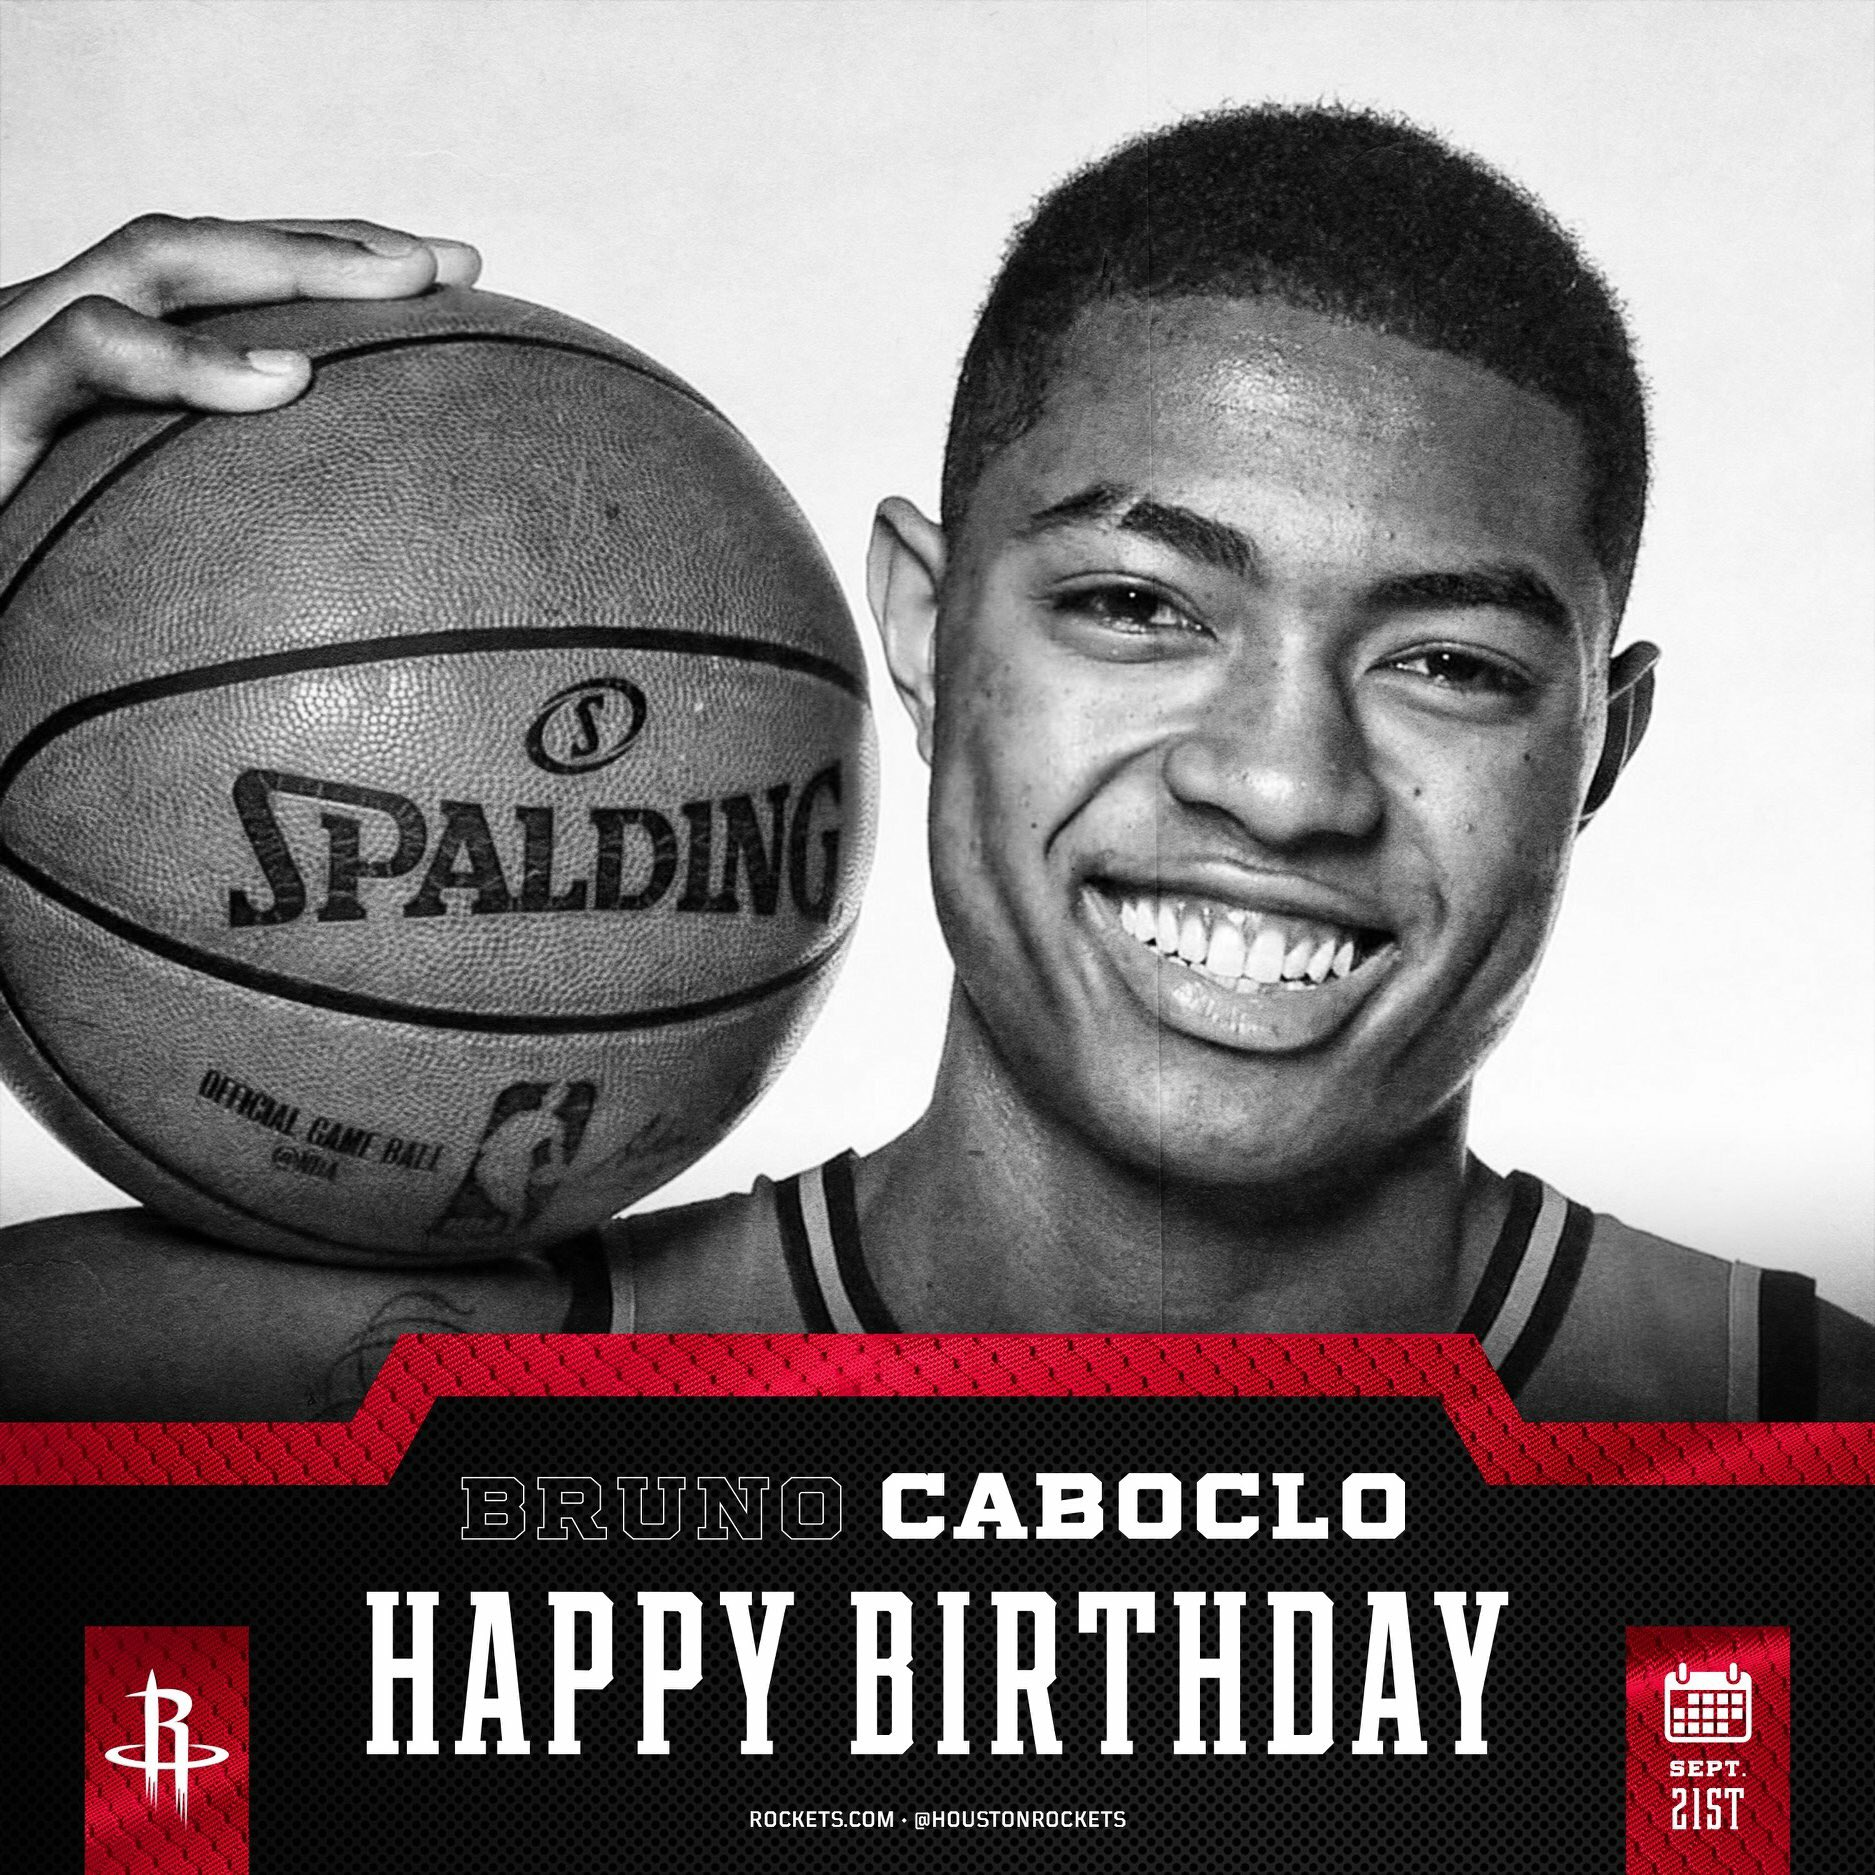 Join us in wishing @Bruno_Caboclo a Happy Birthday! �� https://t.co/8bOdYtJ9BJ